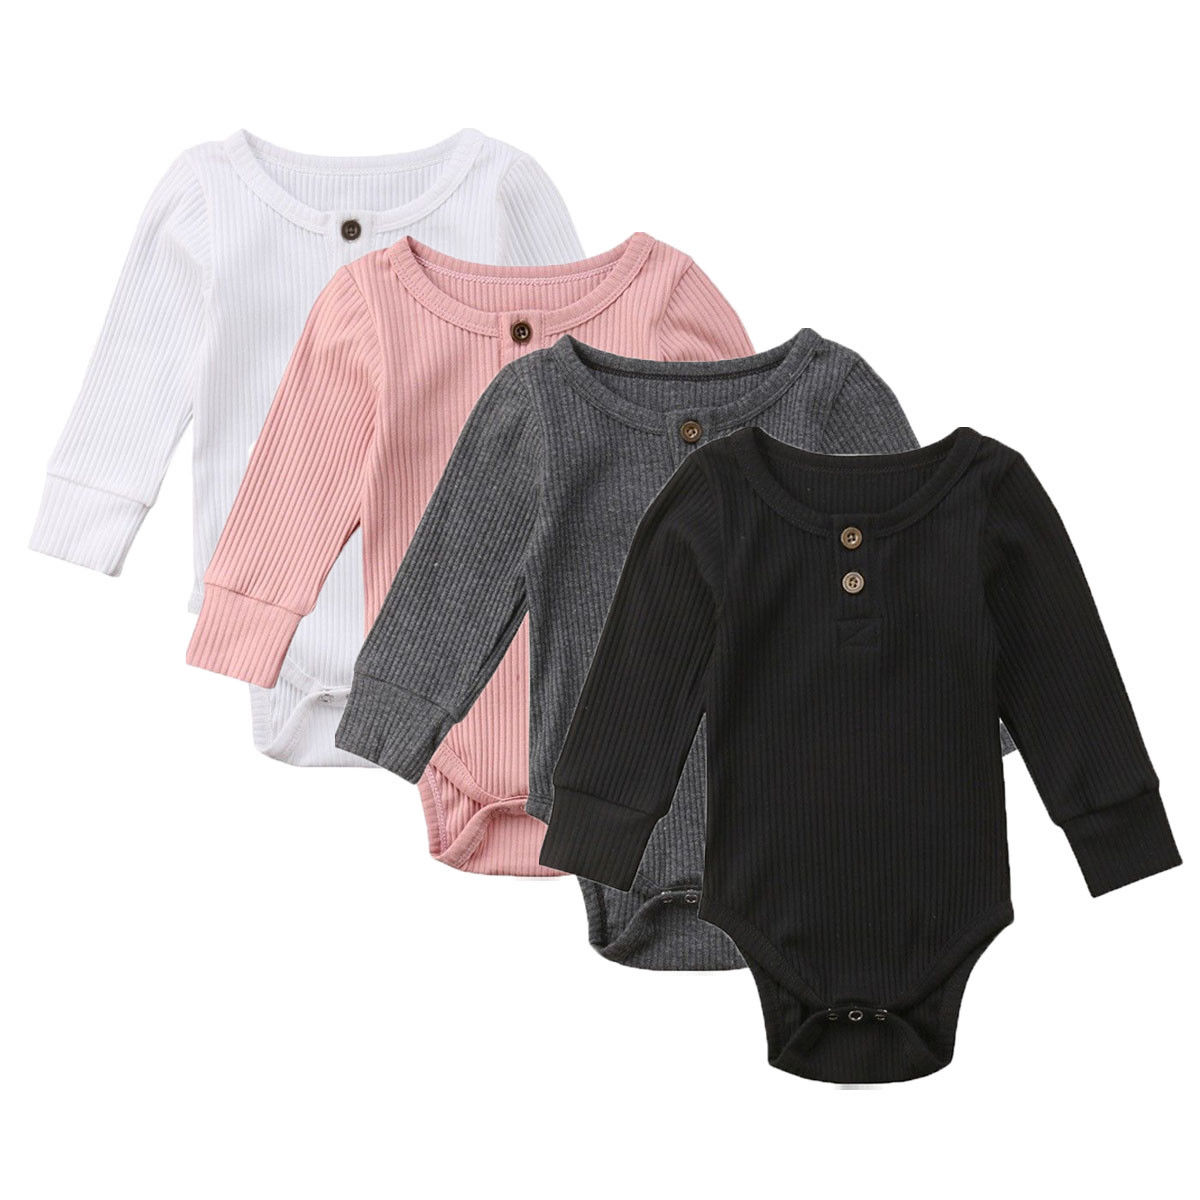 Newborn Baby Autumn Winter Clothes Knitted   Romper   2019 NEW Infant Boy Girl Long Sleeve Solid Jumpsuit Playsuit Outfits 0-24M